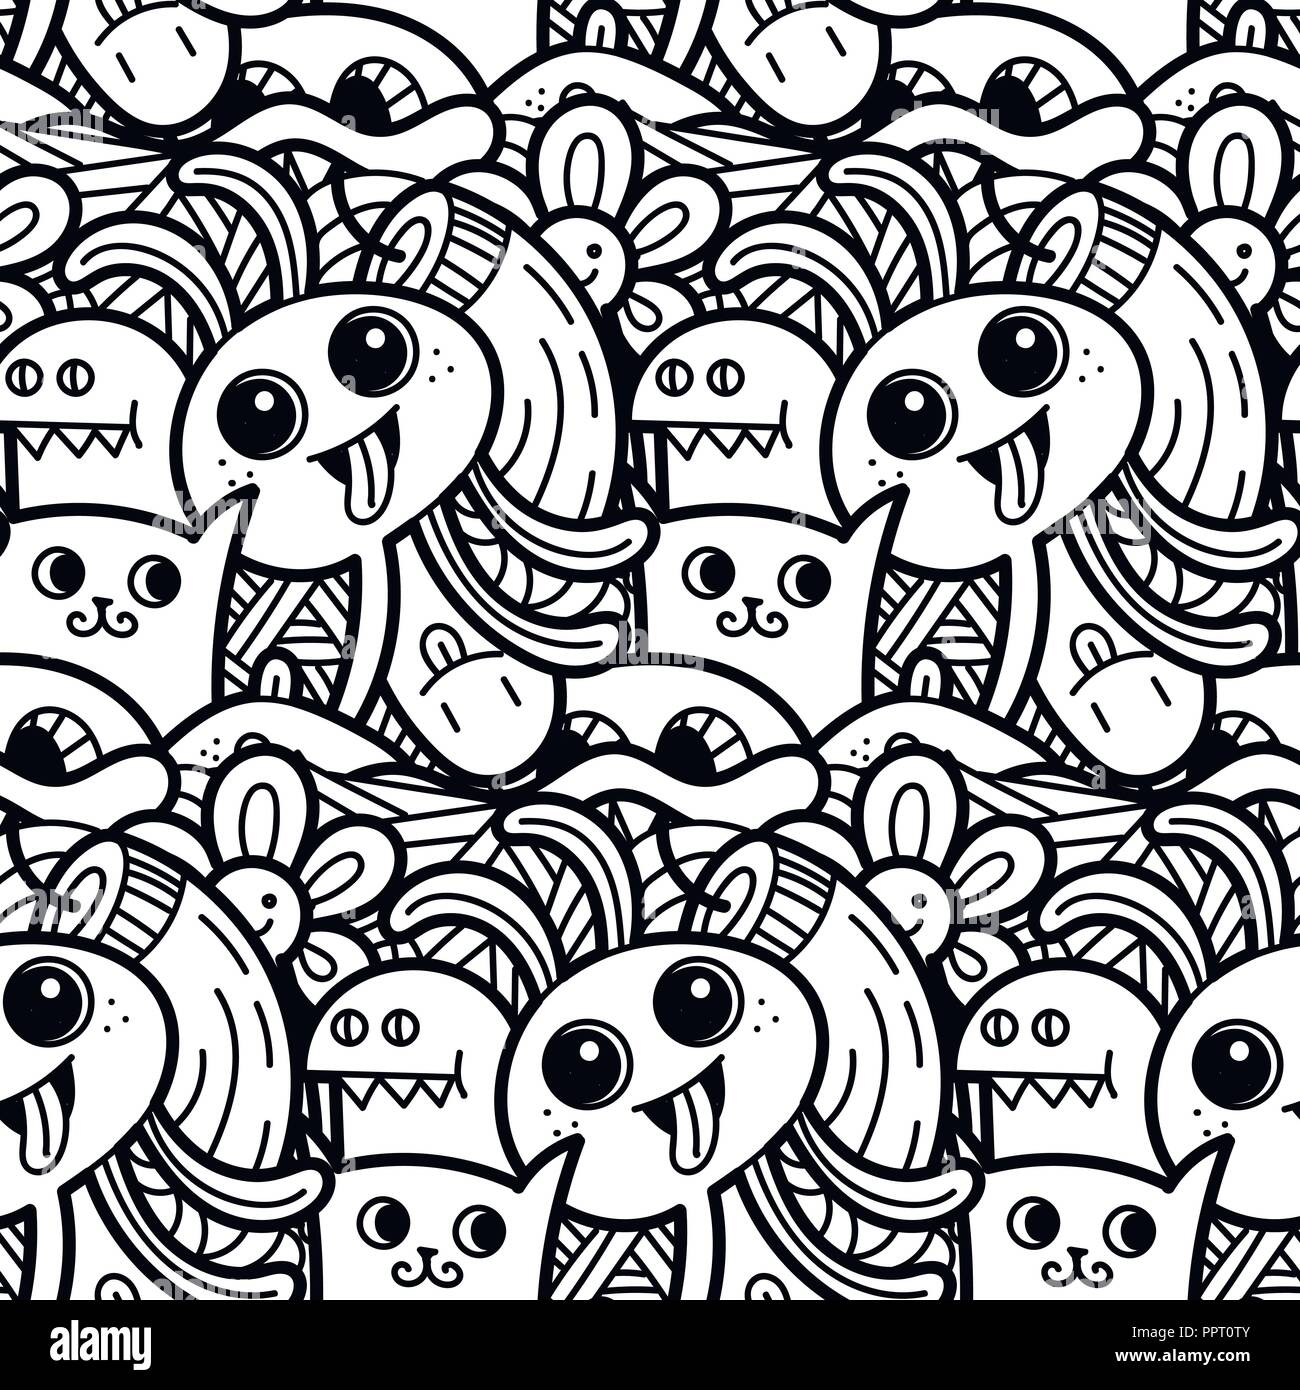 Funny doodle monsters seamless pattern for prints designs and children books vector illustration for coloring pages